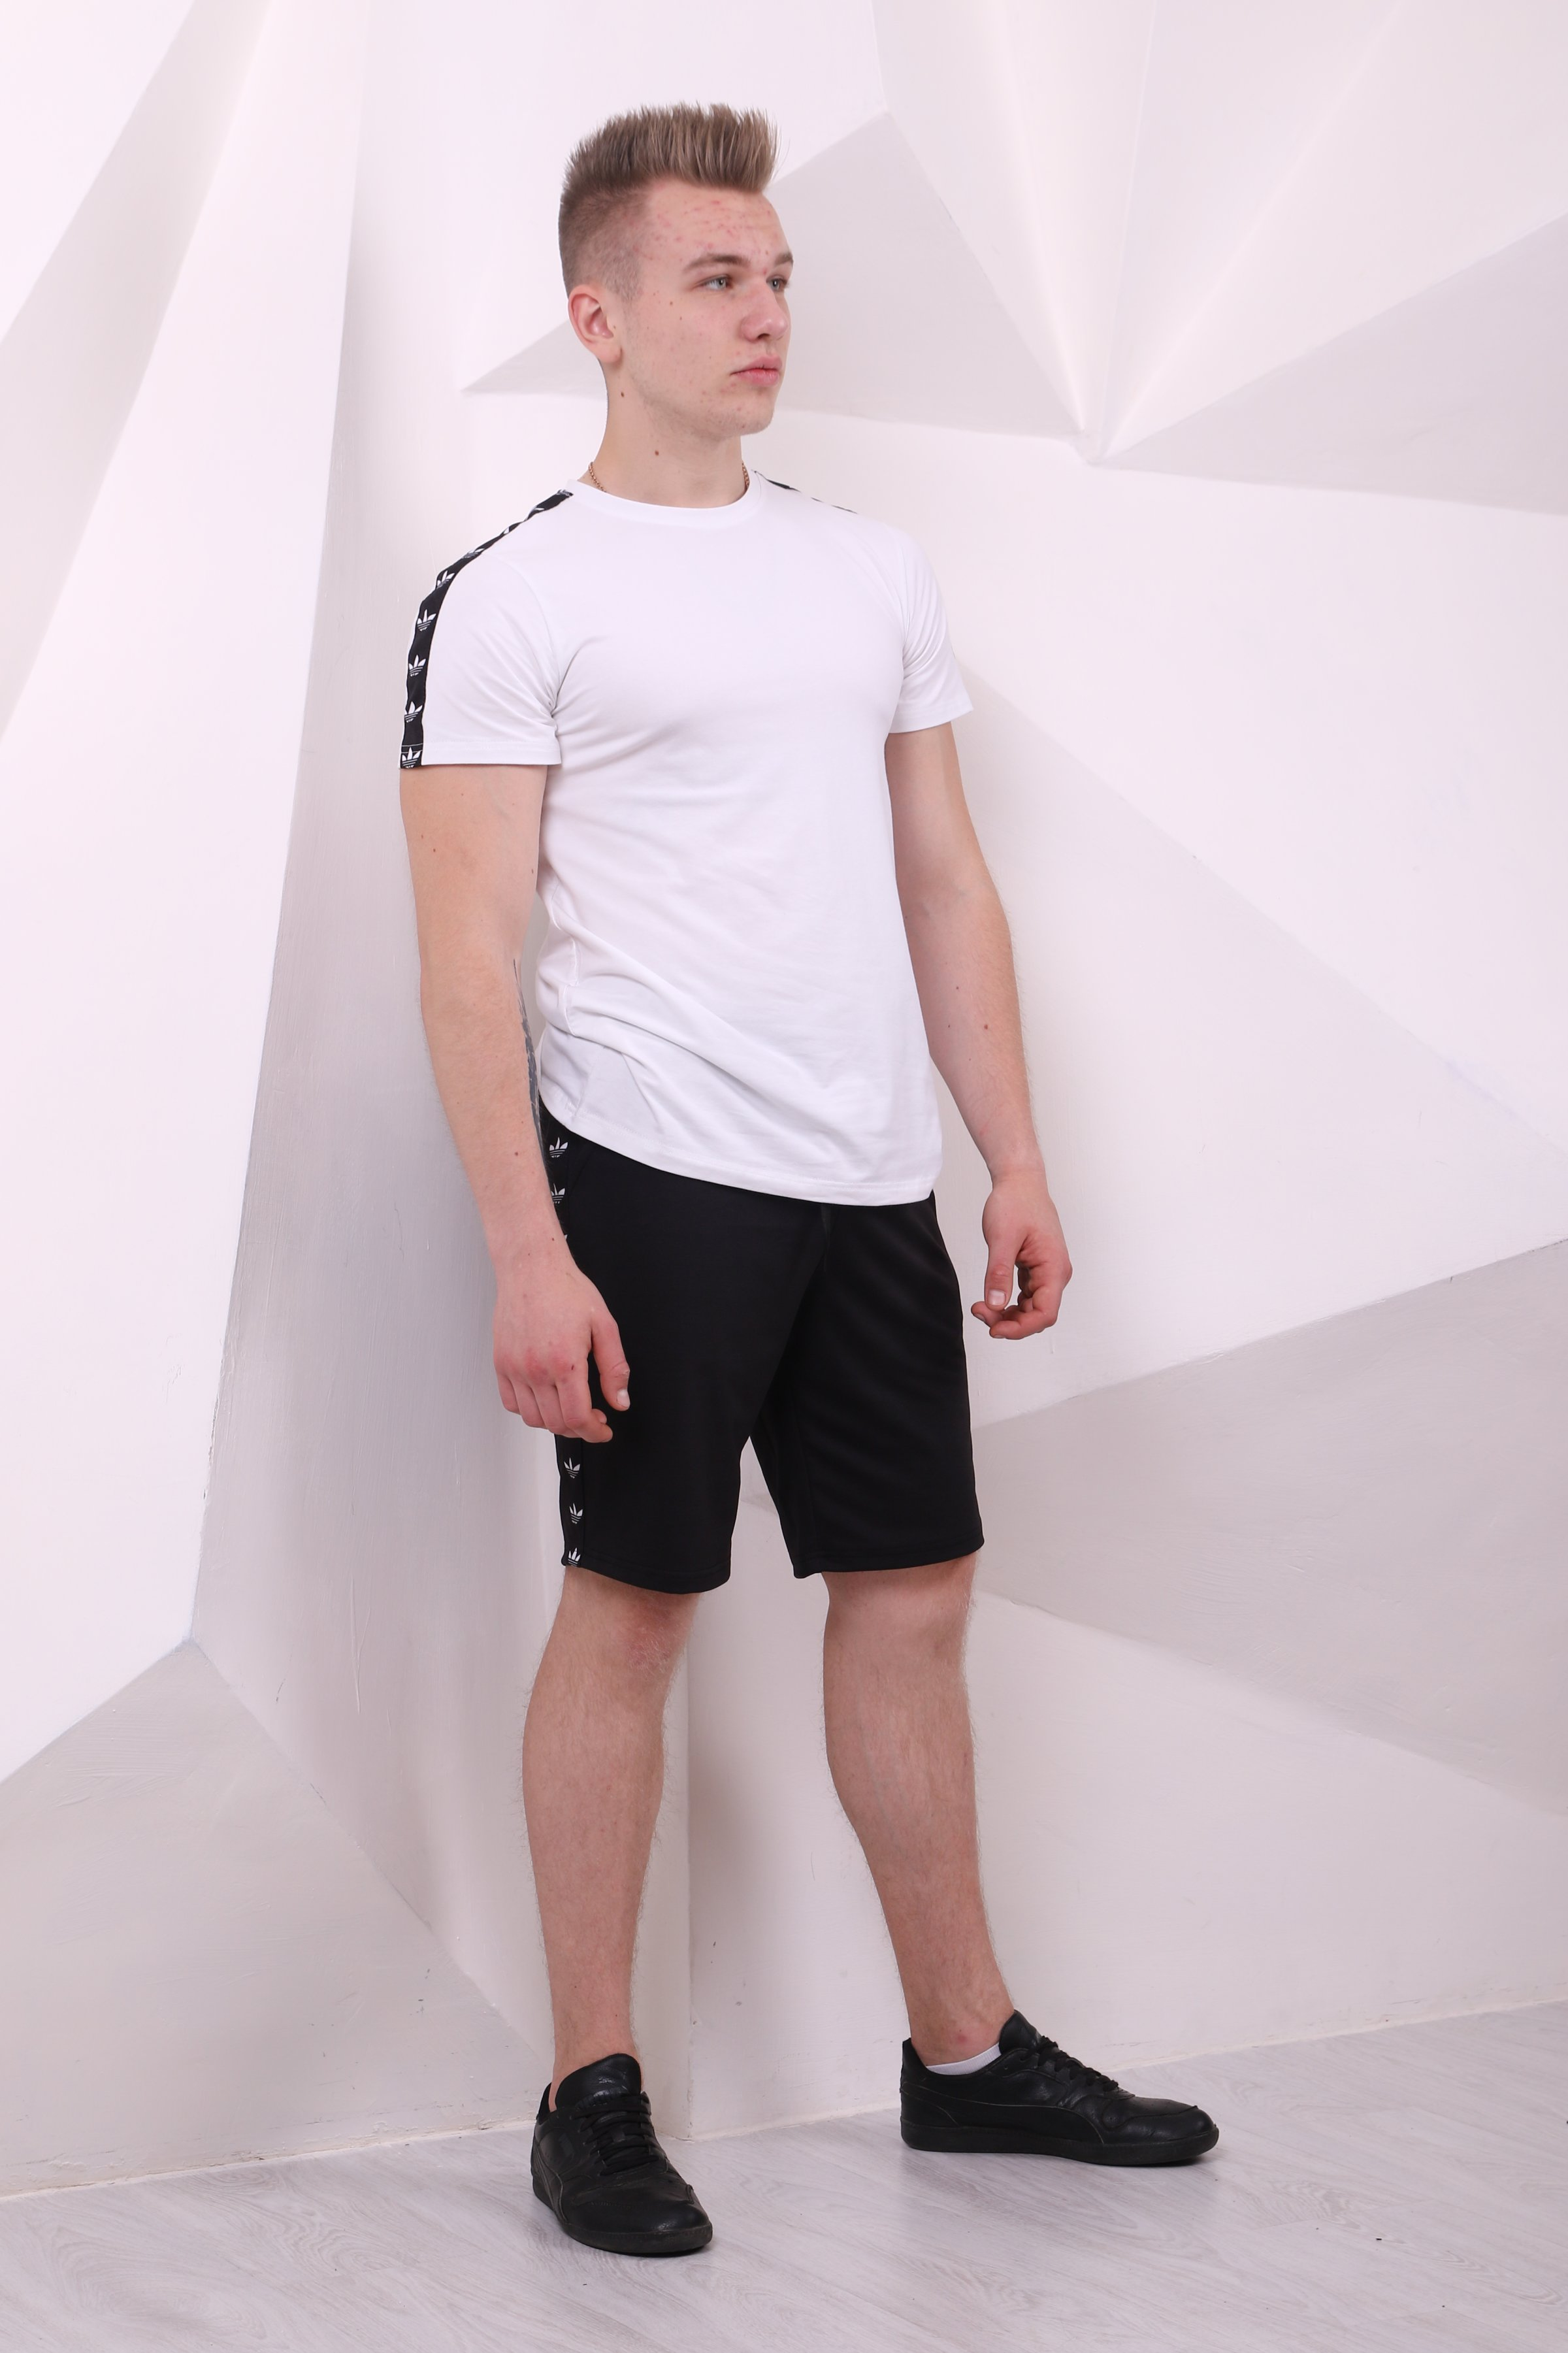 Футболка Quest Wear White 3, S